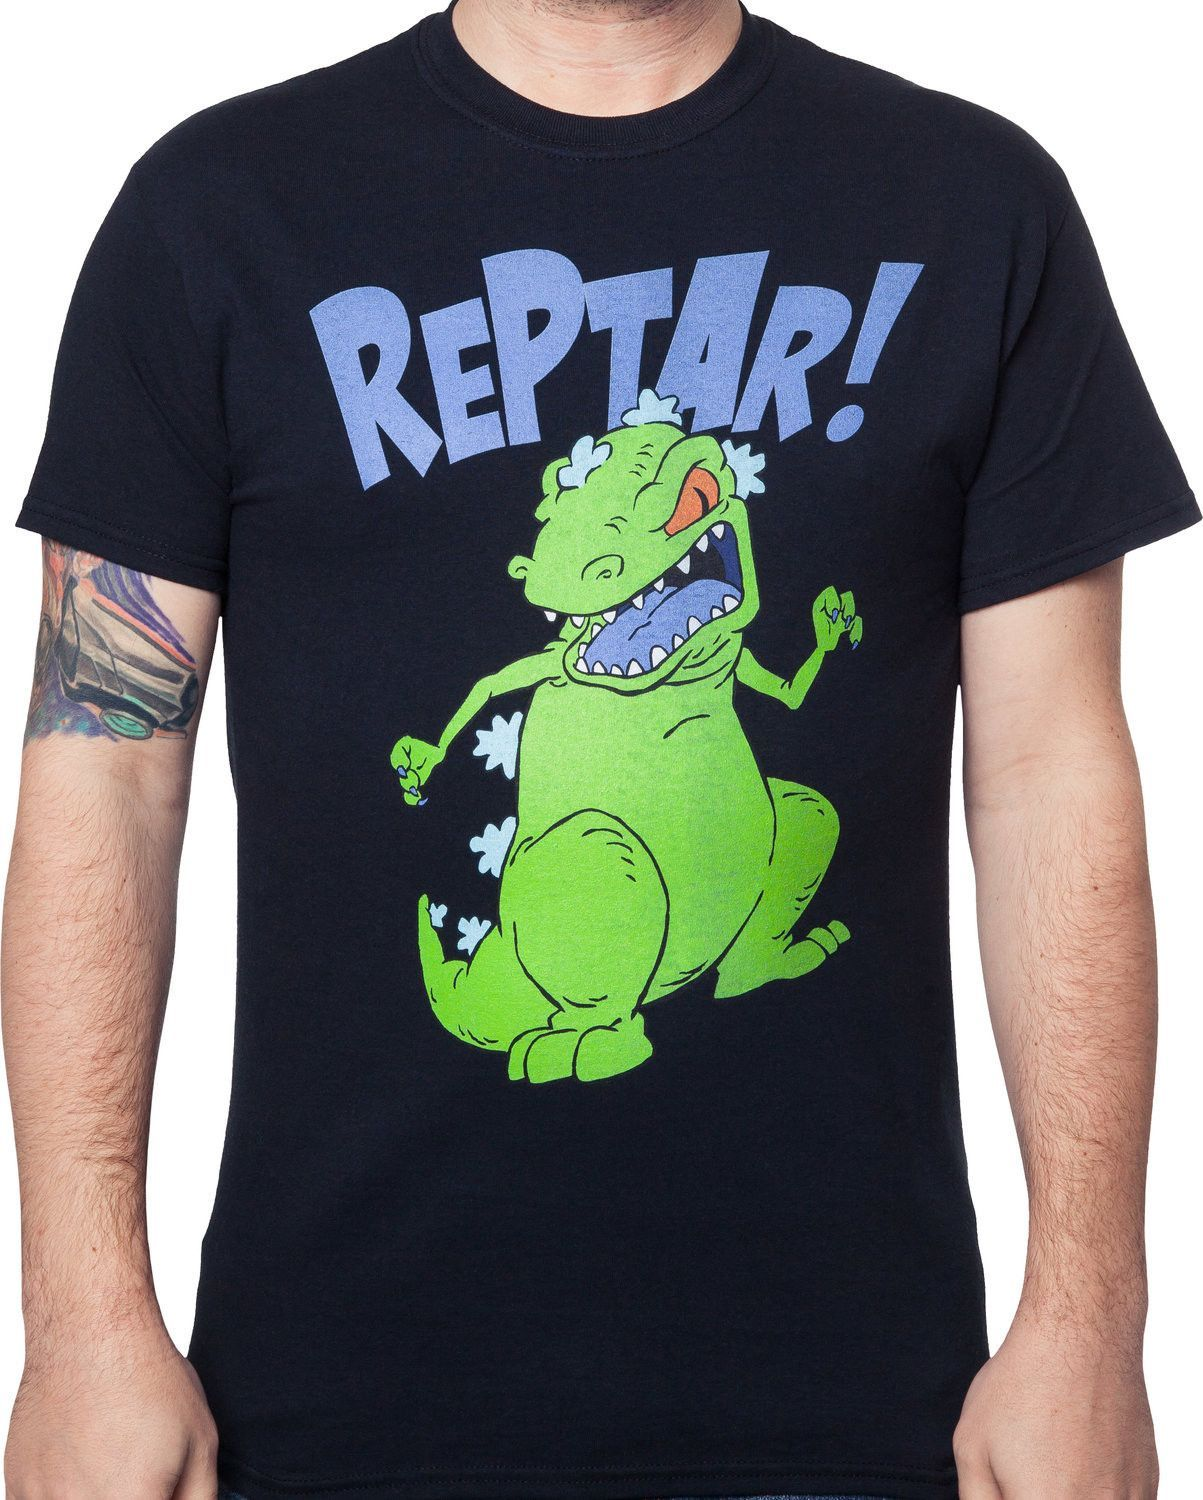 8fc02789 This Reptar Shirt features the Godzilla like creature from the hit  Nickelodeon show Rugrats.